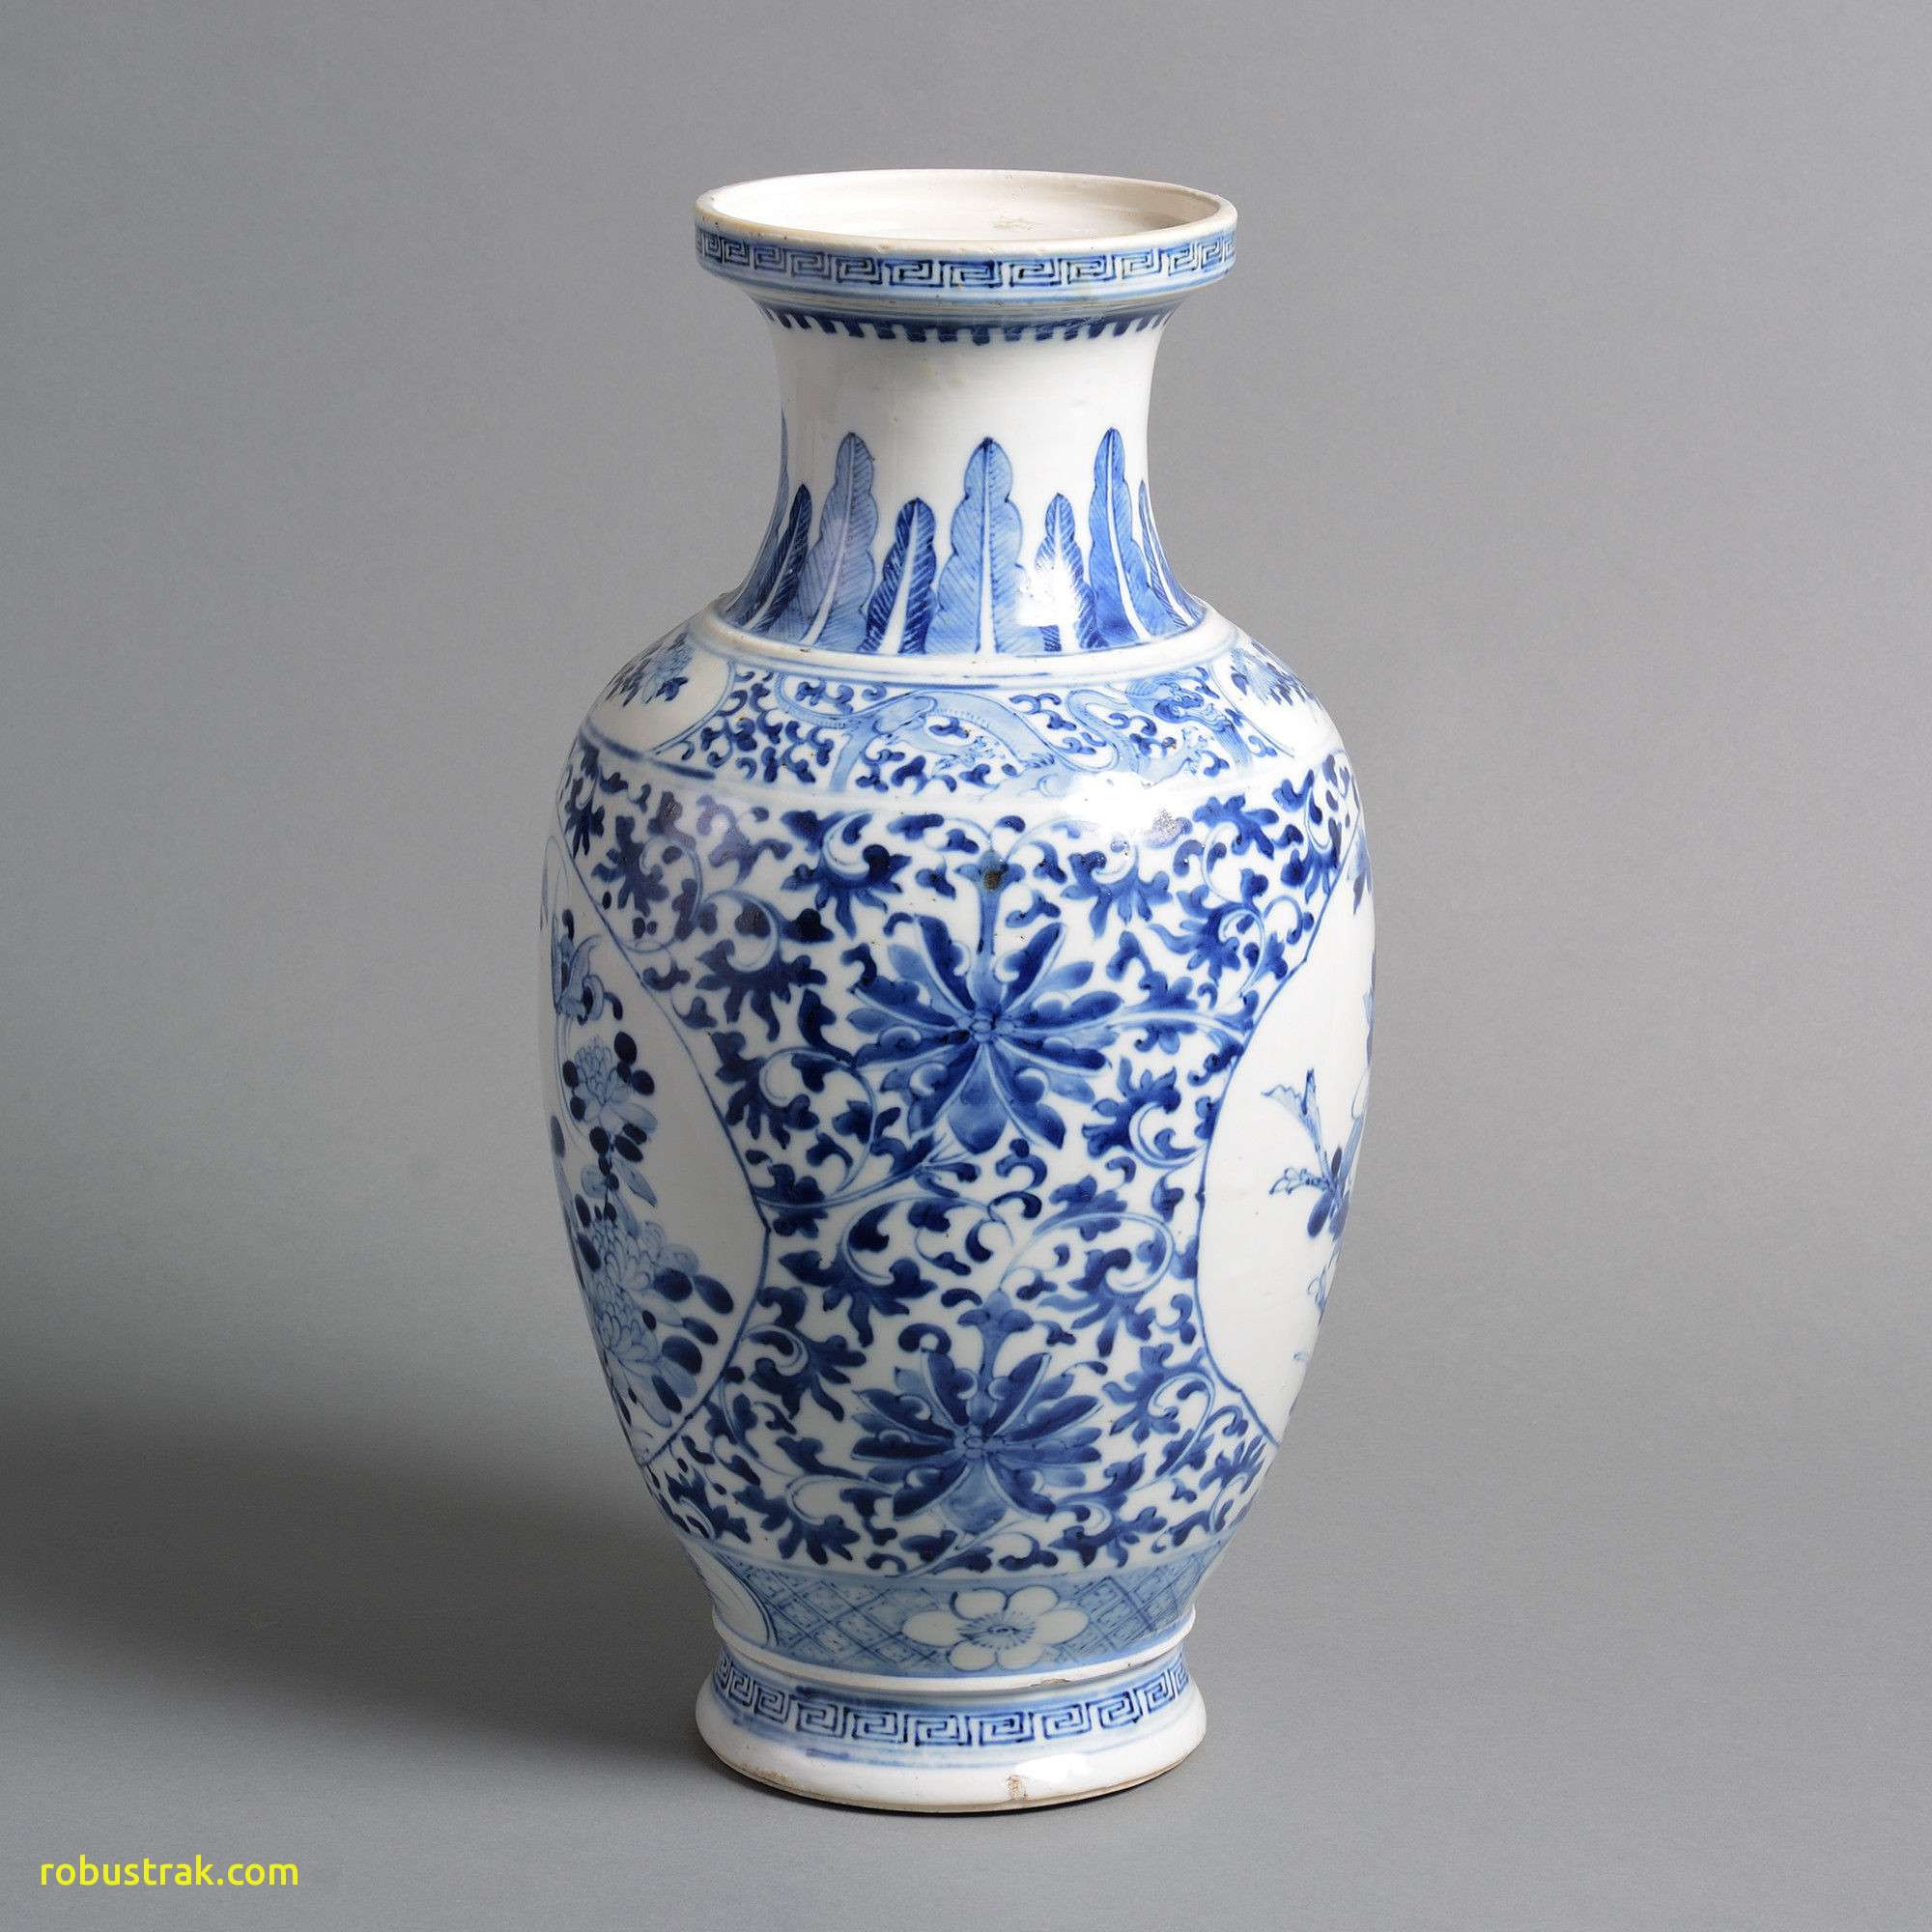 modern ceramic vase of luxury blue and white porcelain vase home design ideas pertaining to lg h vases blue white porcelain a 19th century qing dynasty and vasei 0d